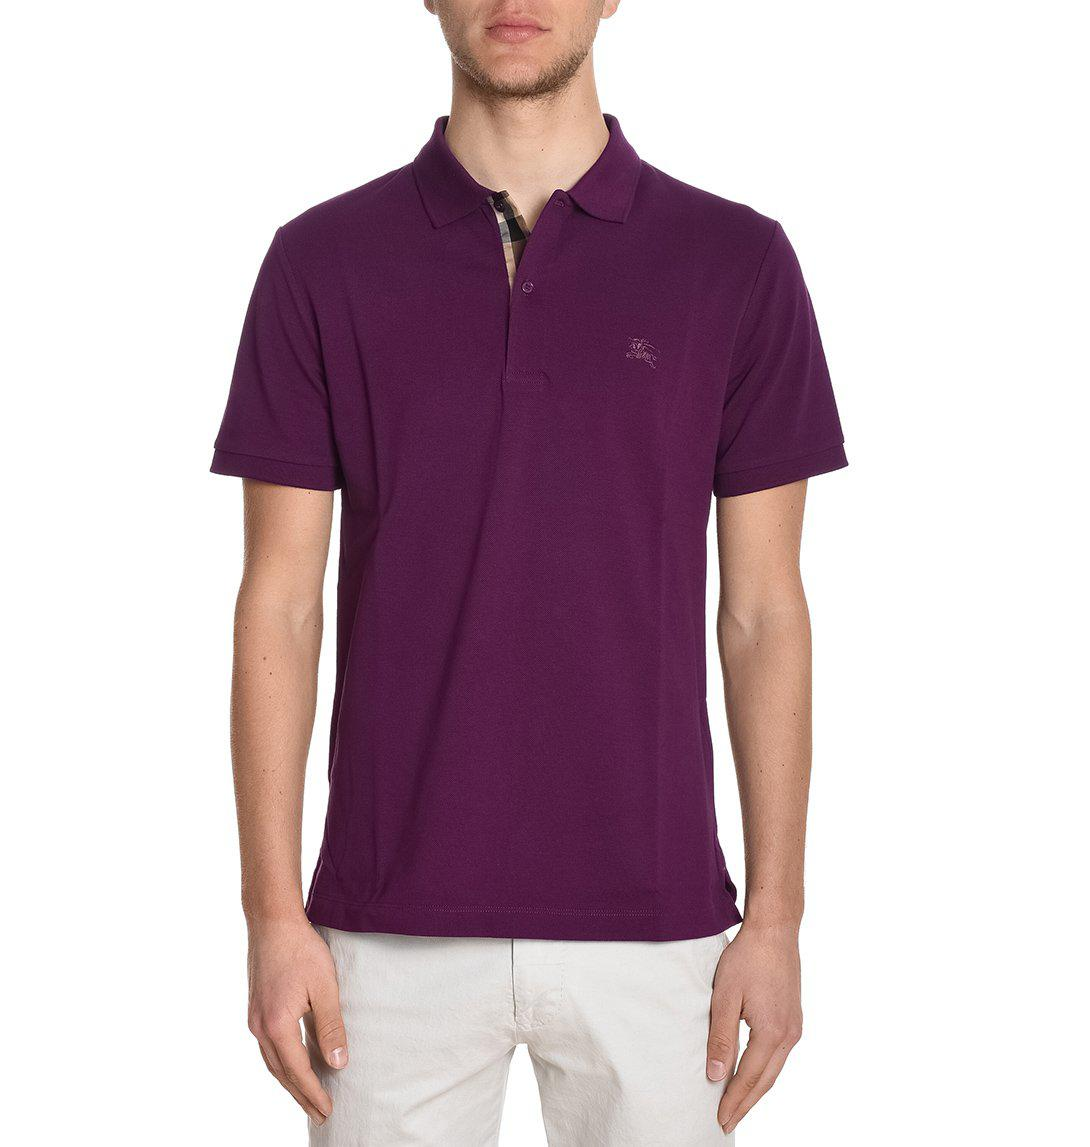 6d7c5c23e Lyst - Burberry Classic Polo Shirt in Purple for Men - Save ...